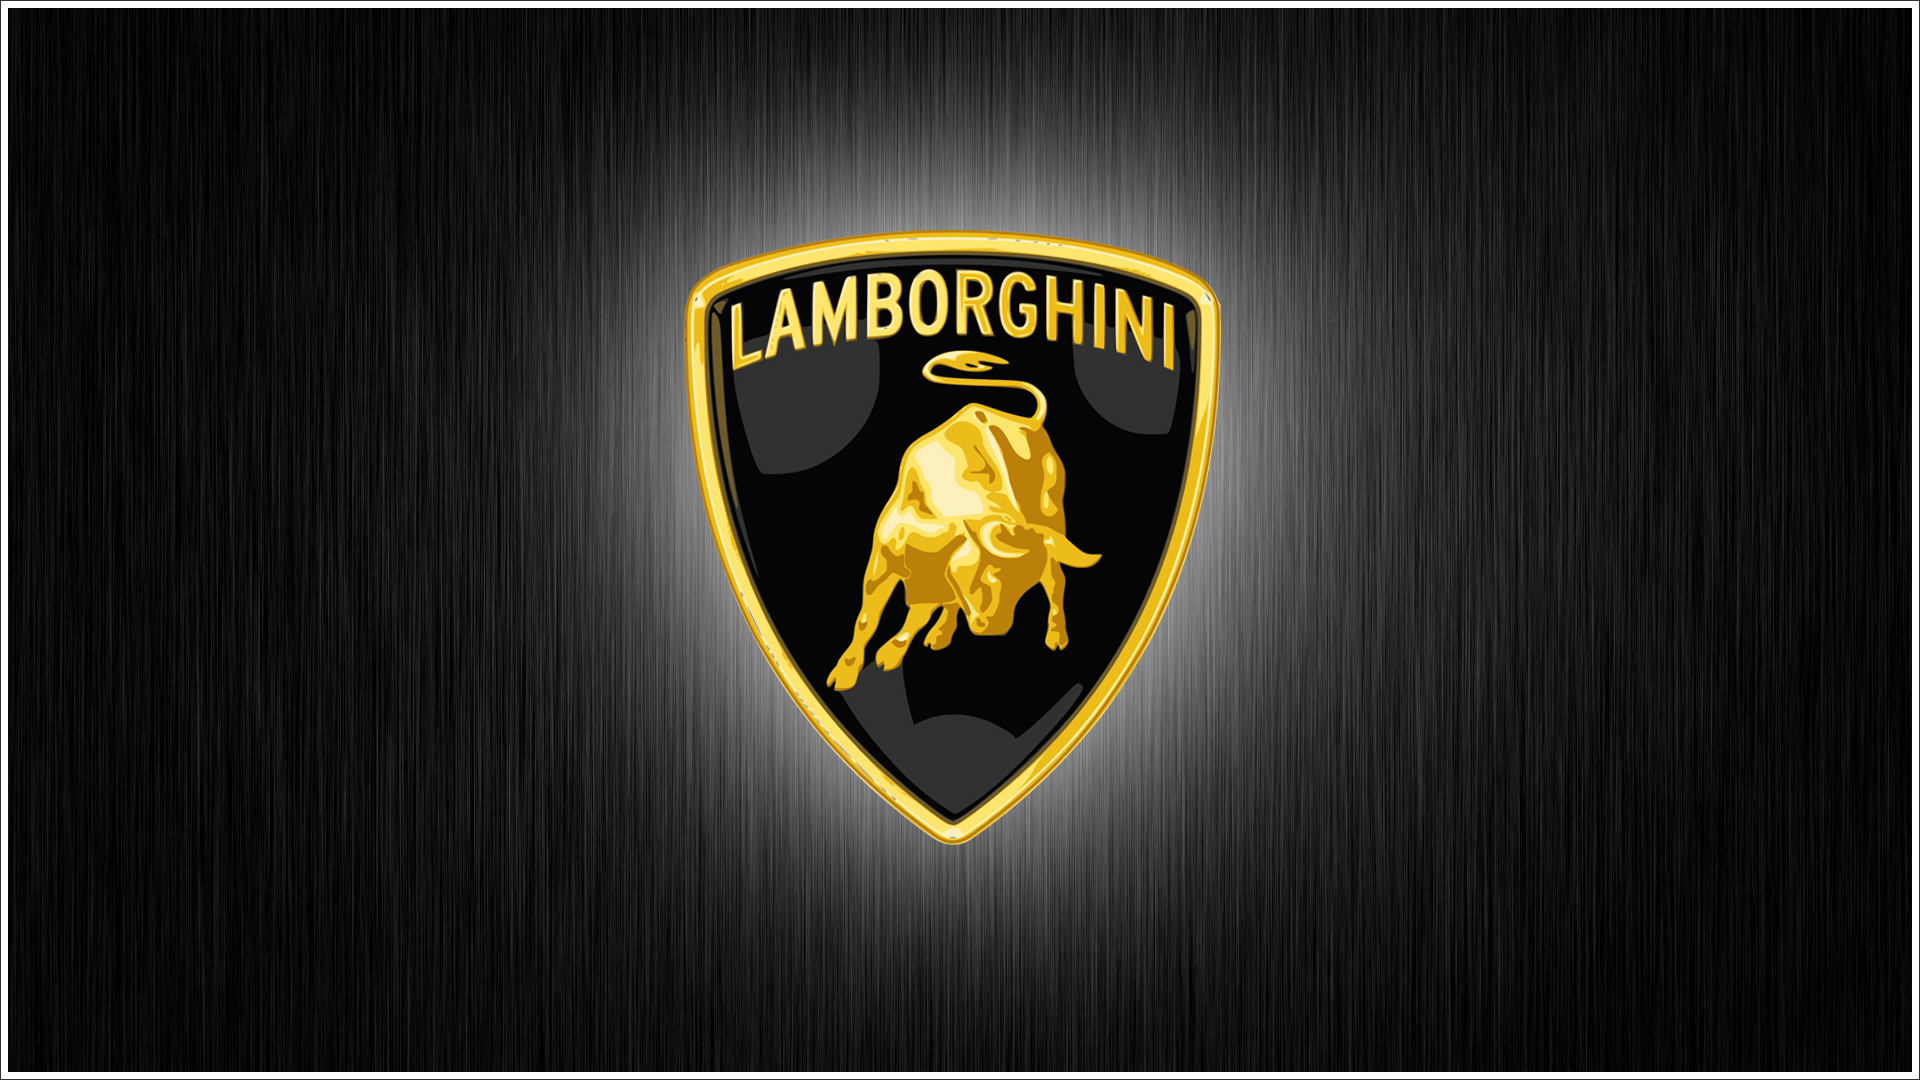 Lamborghini Logo Meaning And History Latest Models World Cars Brands